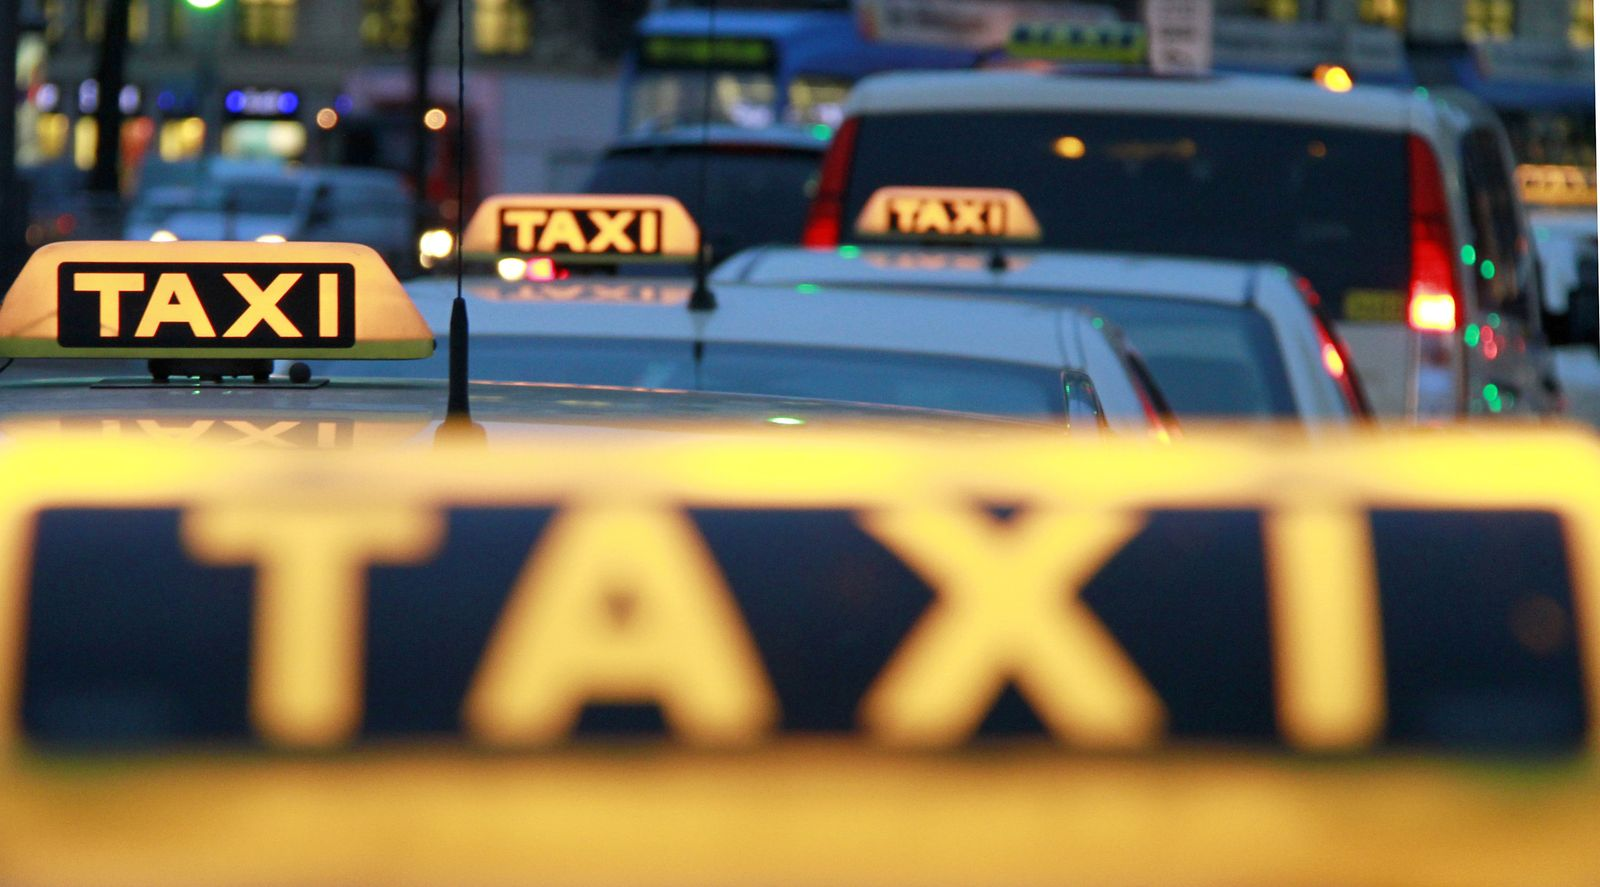 Taxi / Taxis / München